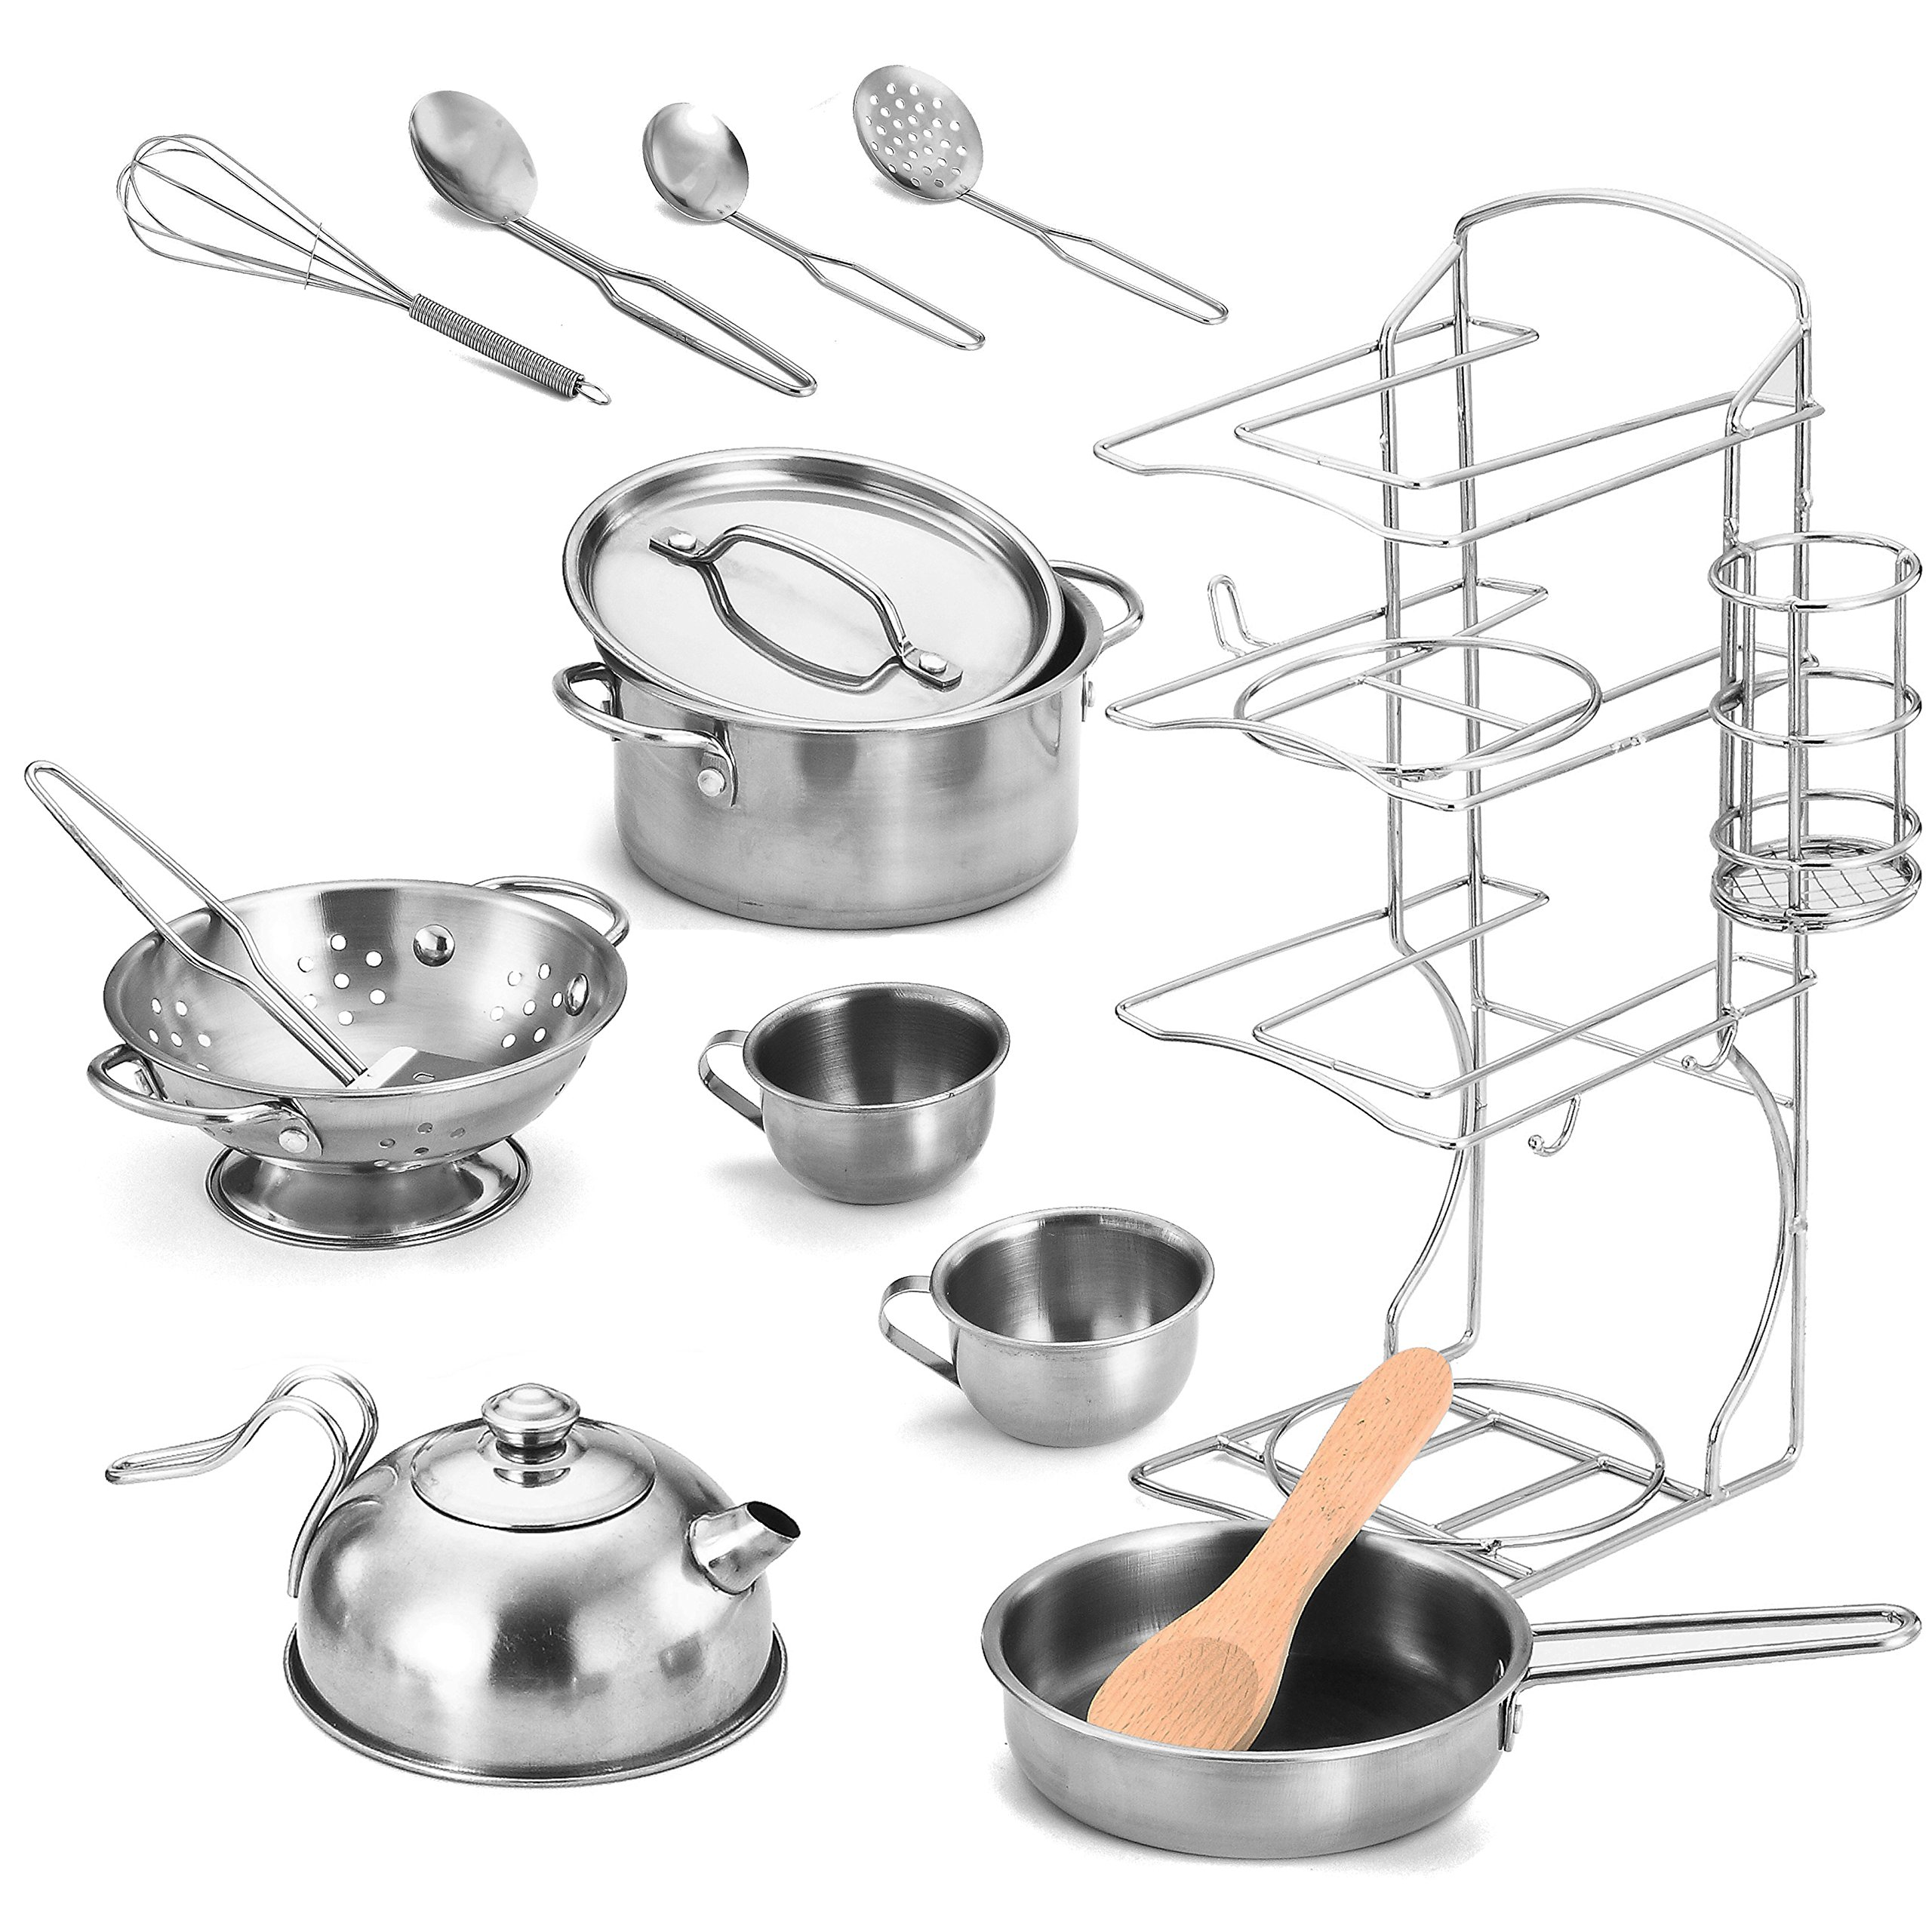 Joyin Toy Stainless Steel Pretend Play Kitchen Play Food Pots and Pans and Tea Party Set for Kids-12 pcs